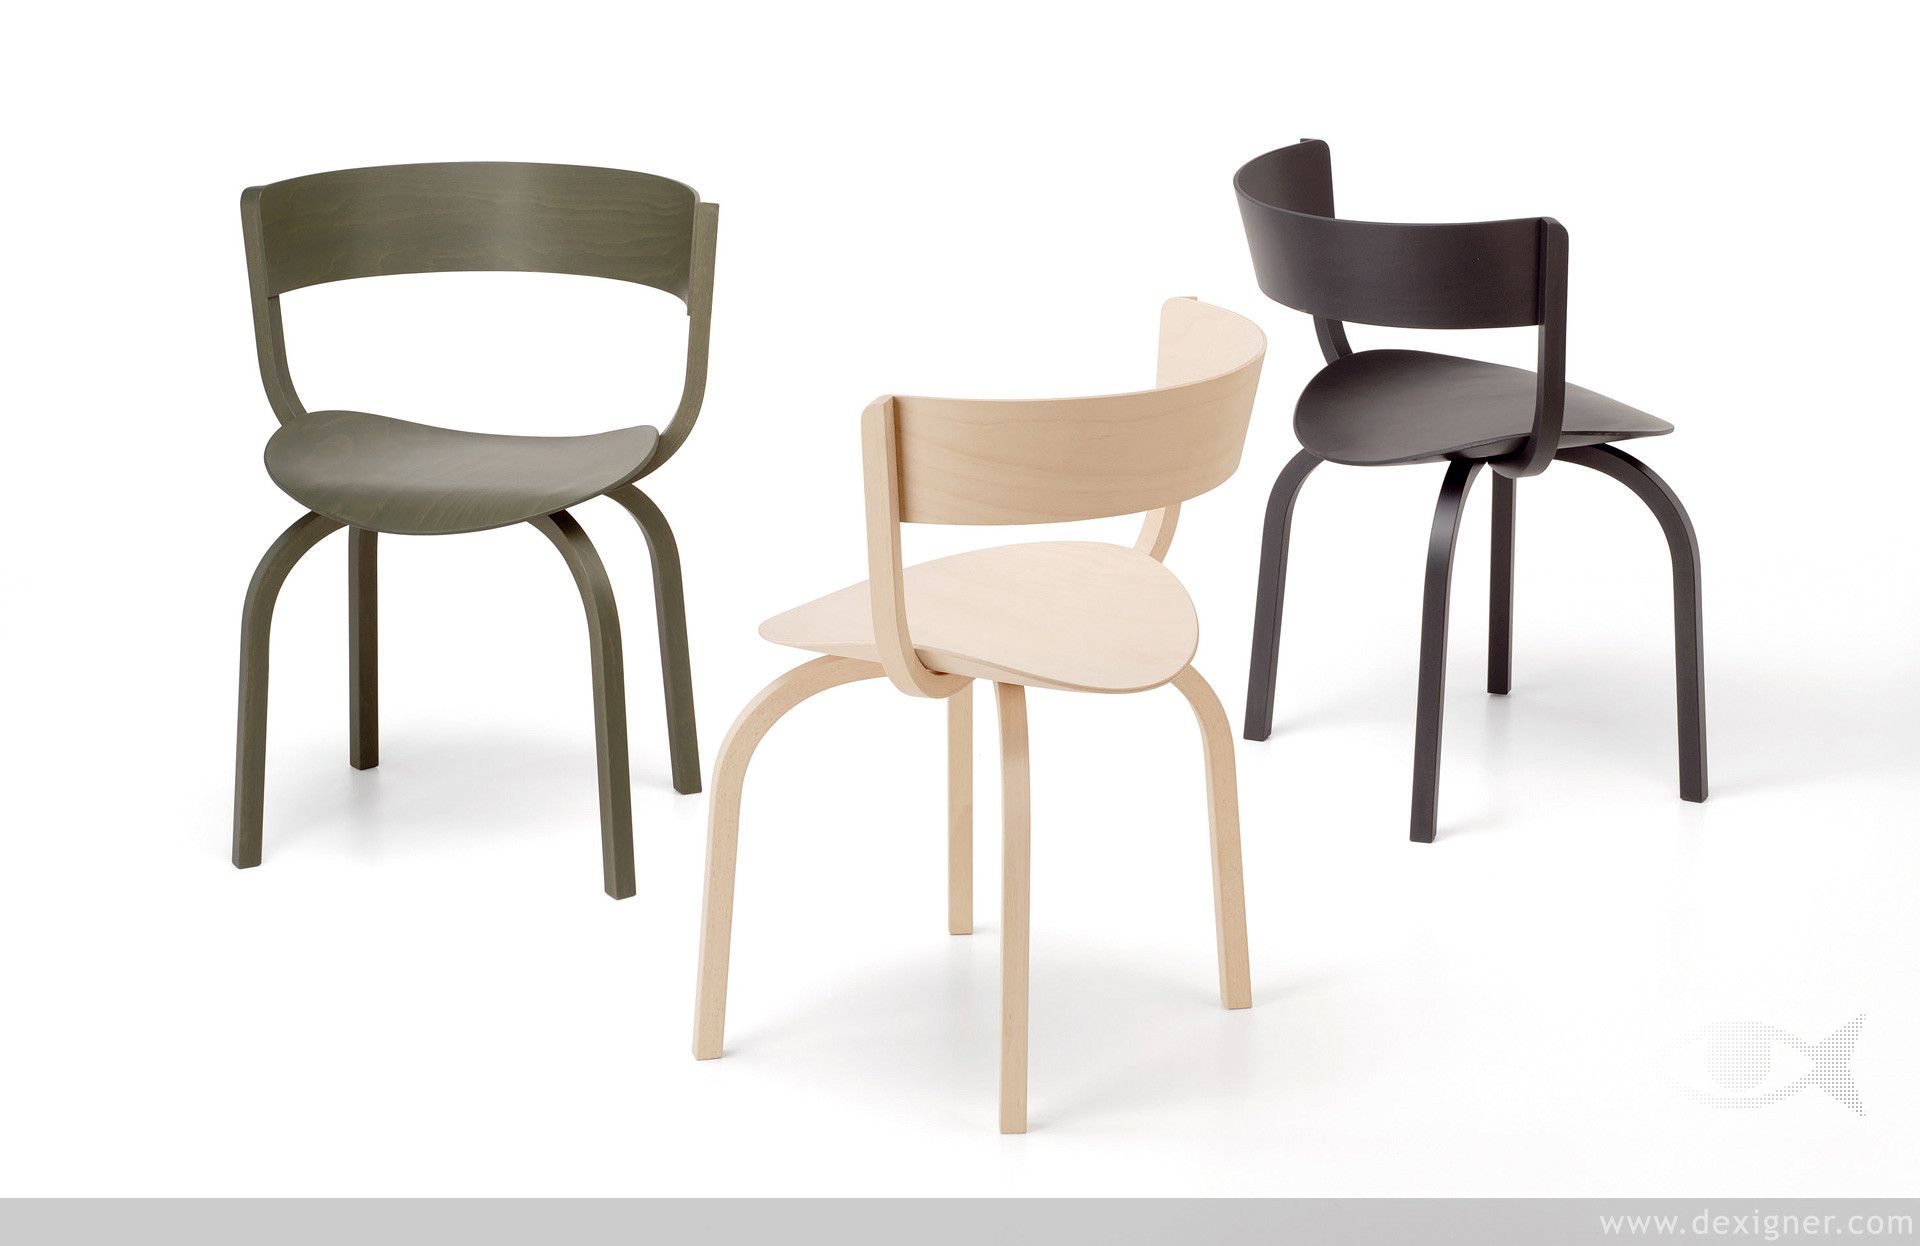 Thonet S Chair Series 404 404f And The New 1404 Tables